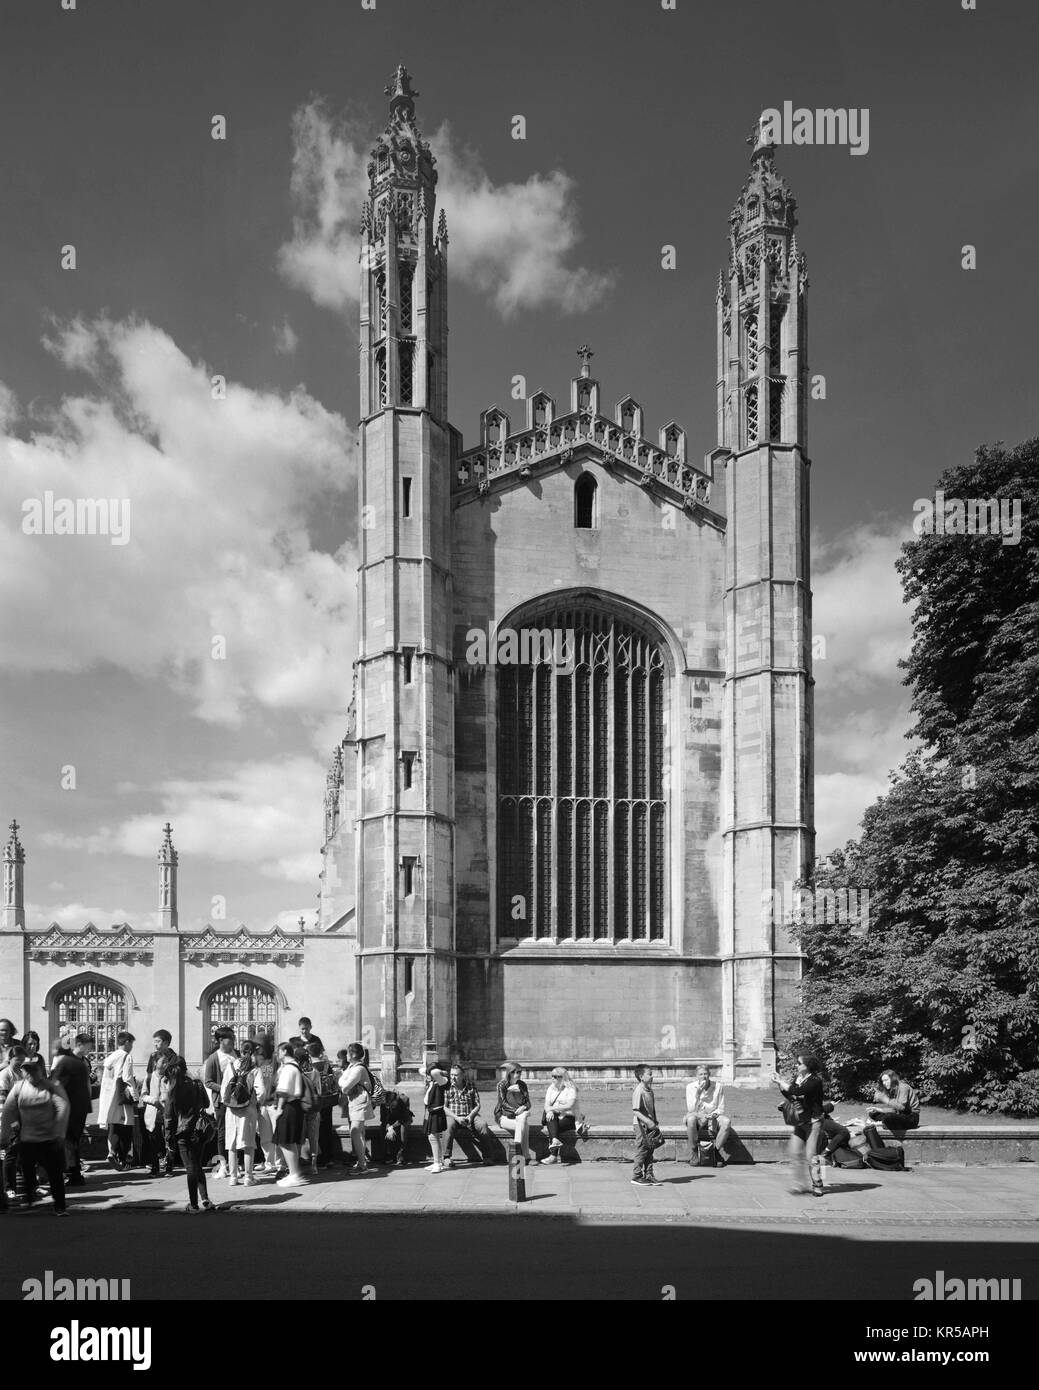 Visitors on King's Parade Cambridge in front of King's College Chapel - Stock Image